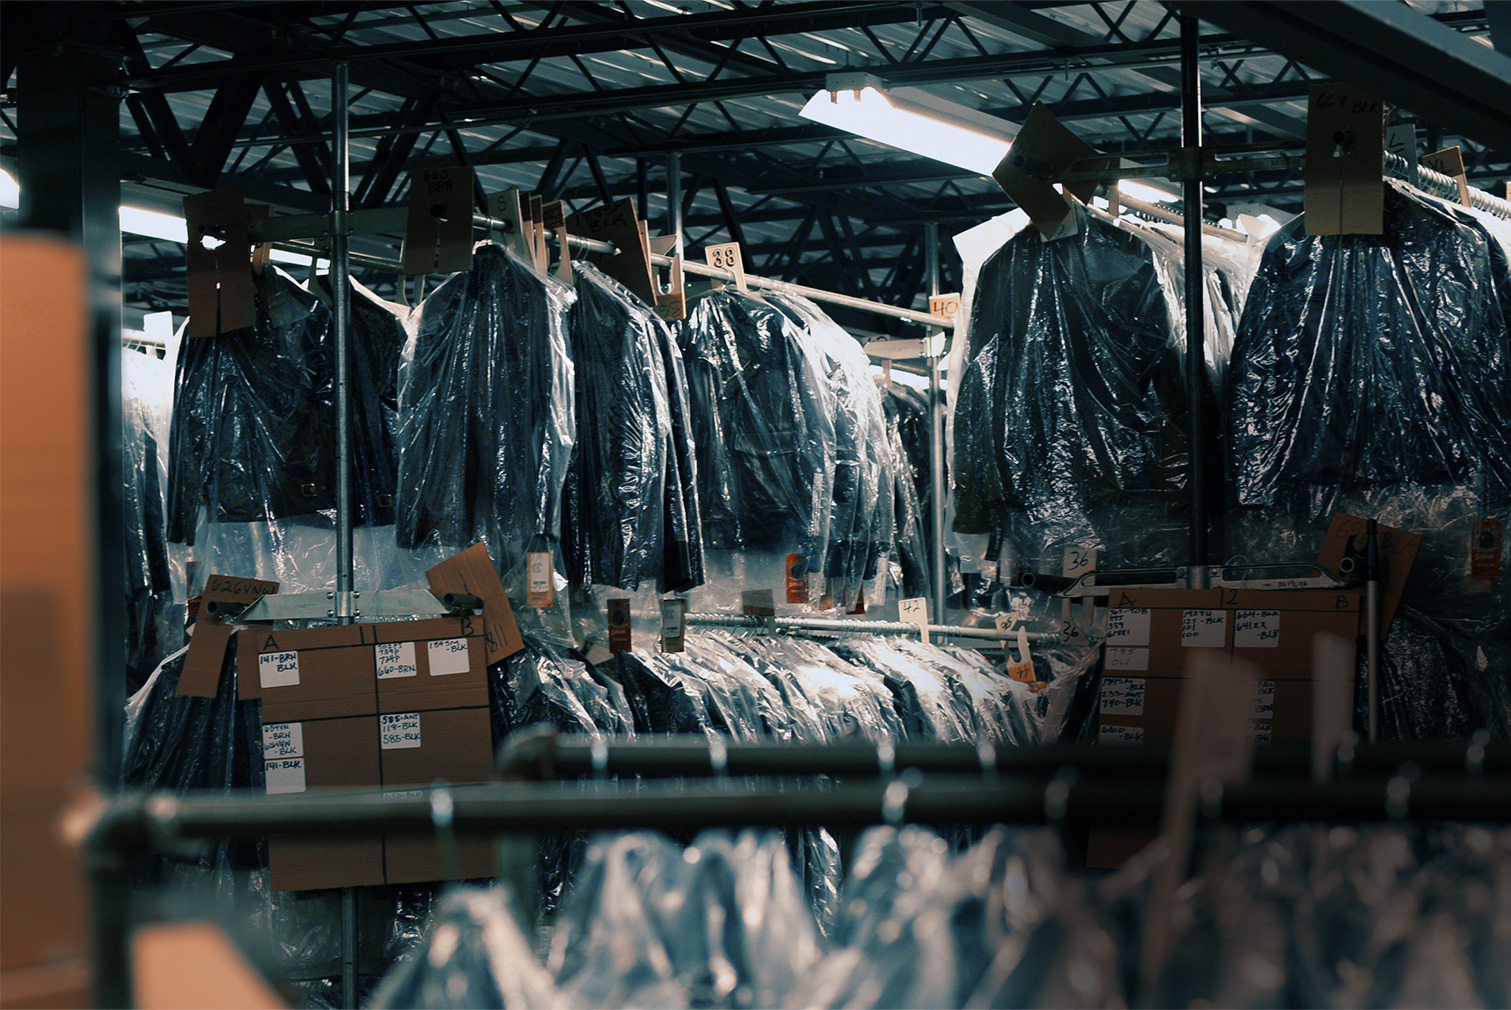 Jackets on hangers in the Schott factory warehouse